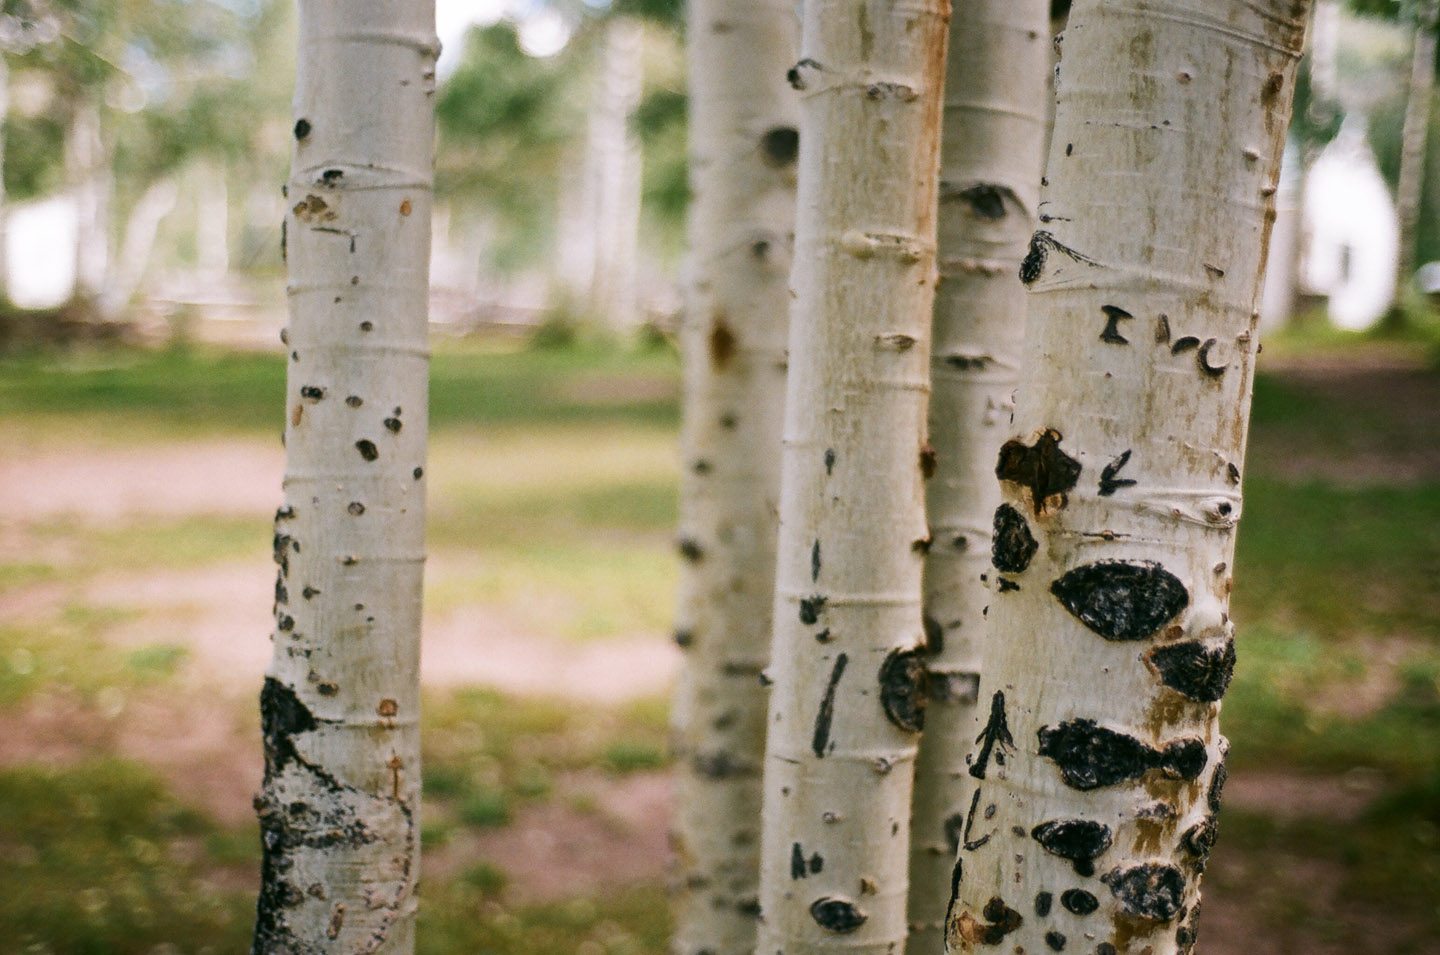 Aspen trees on 35mm Film